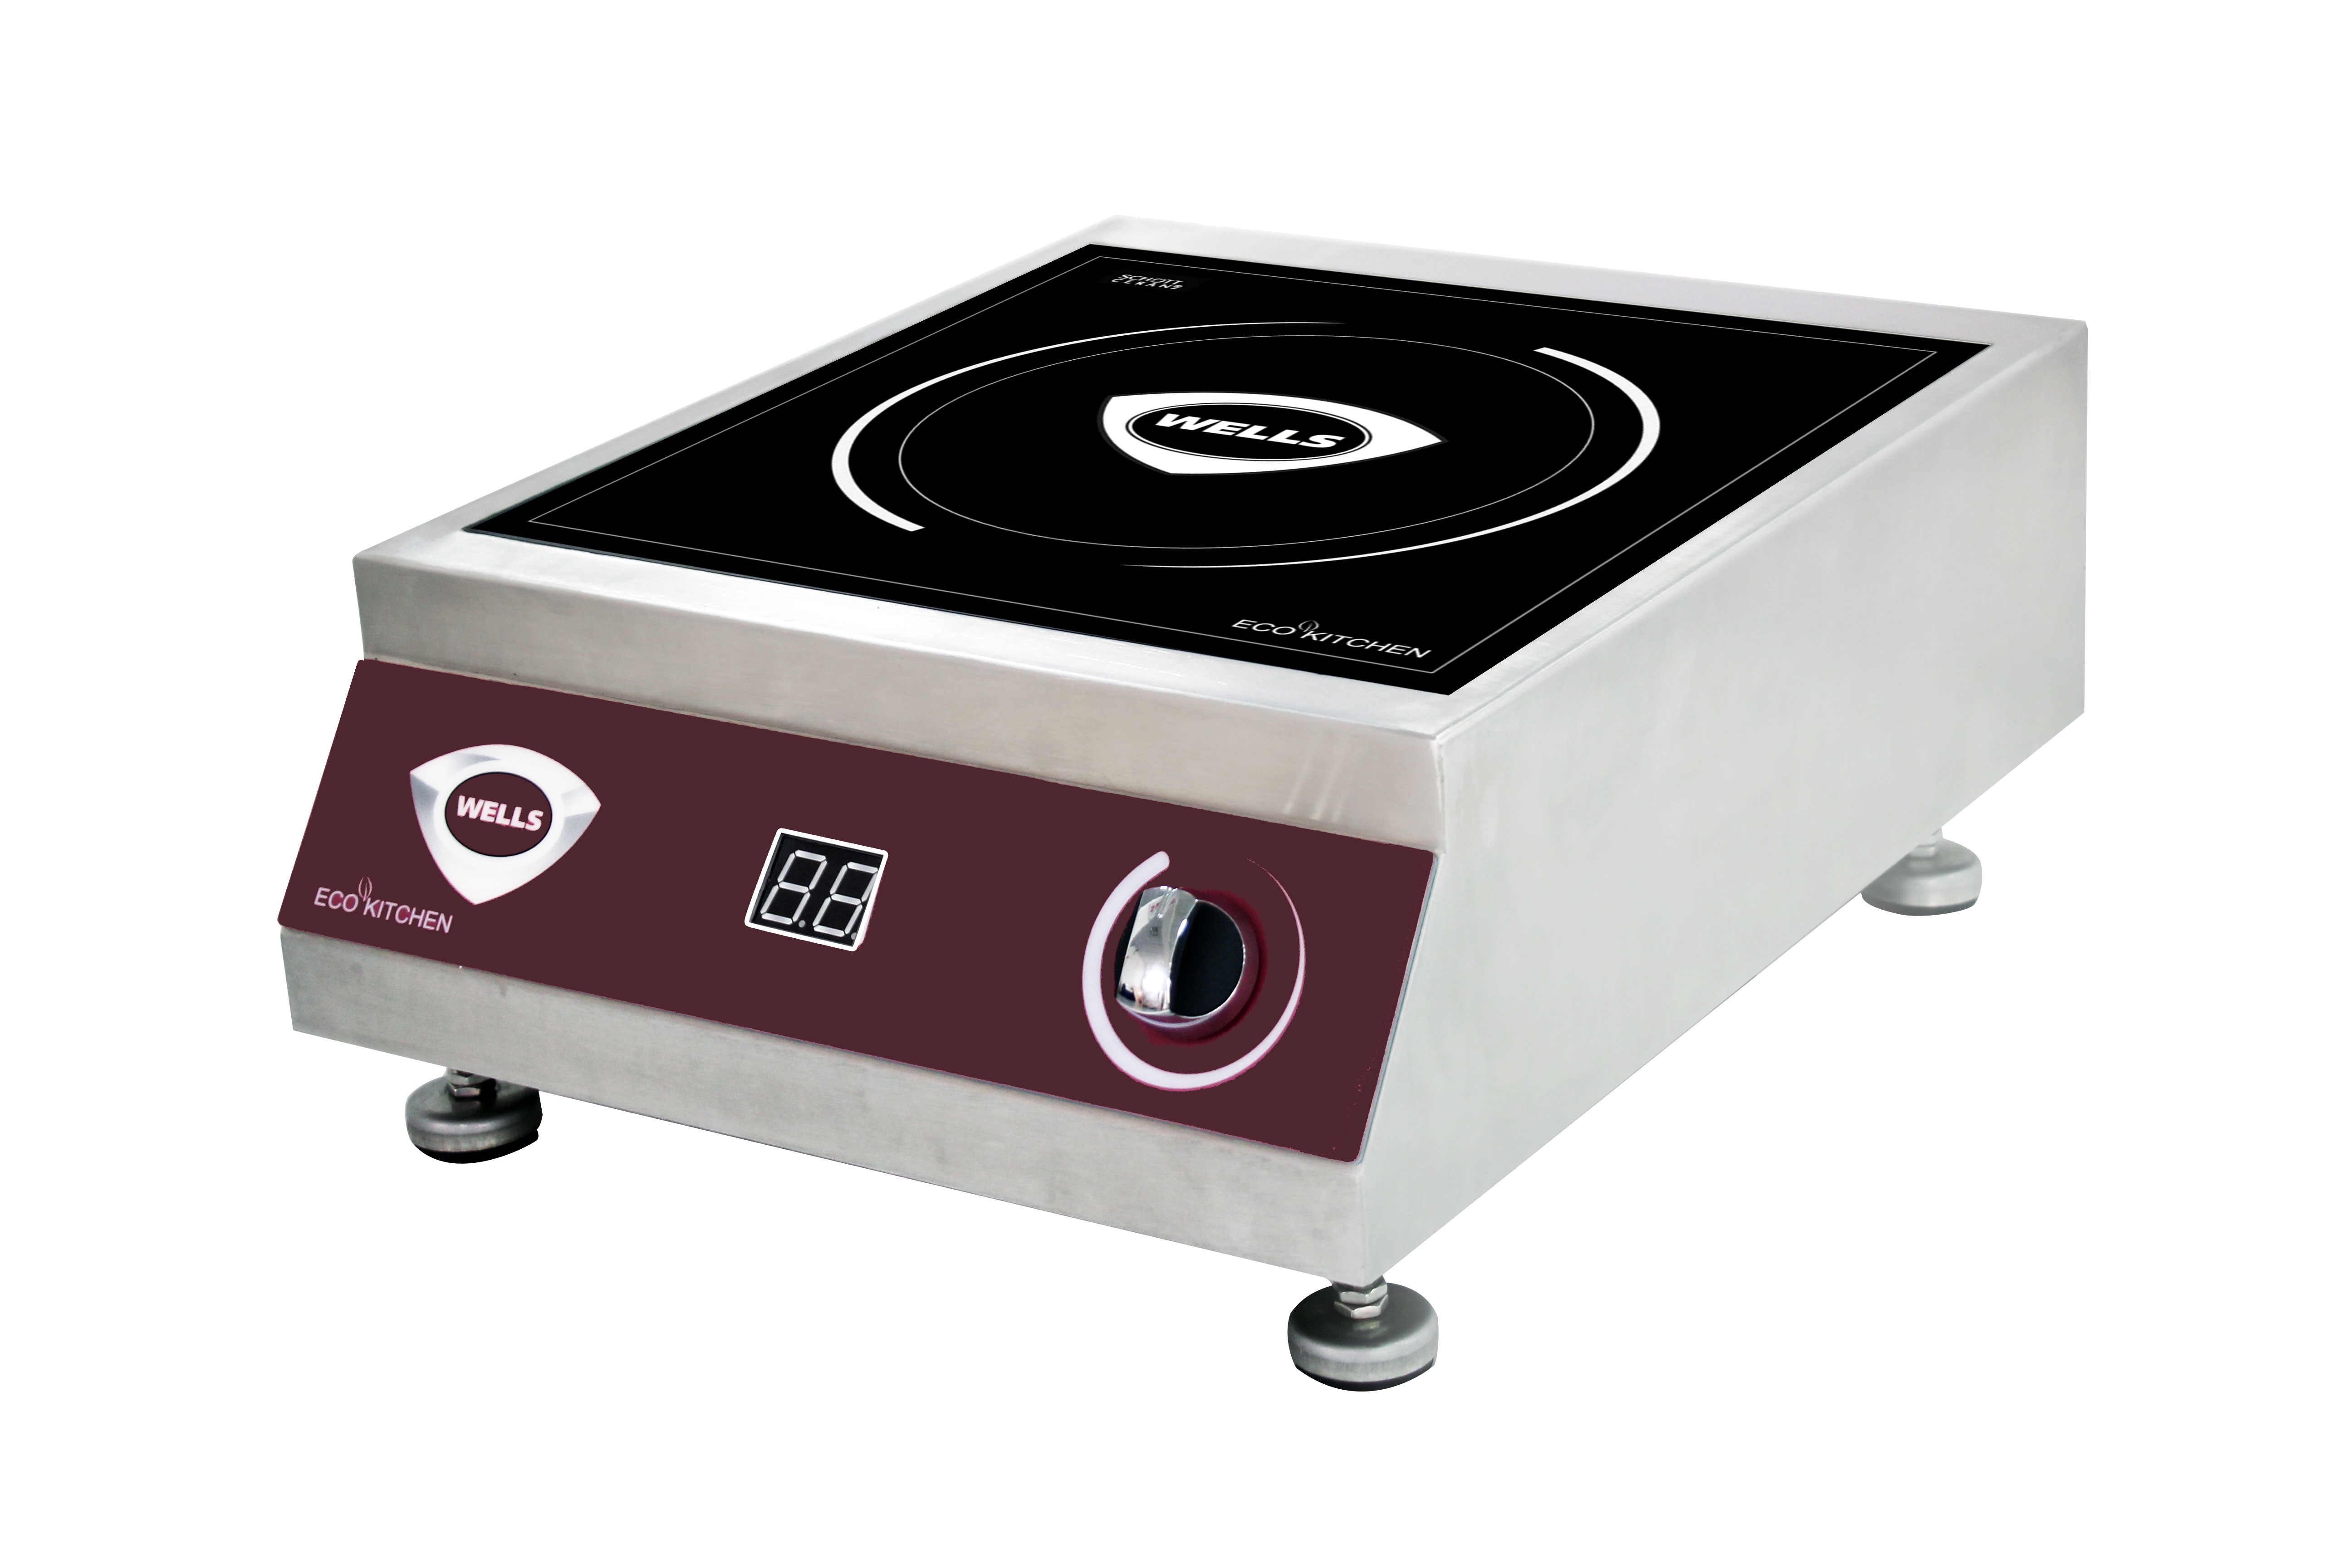 Wells ISC35 induction range, countertop